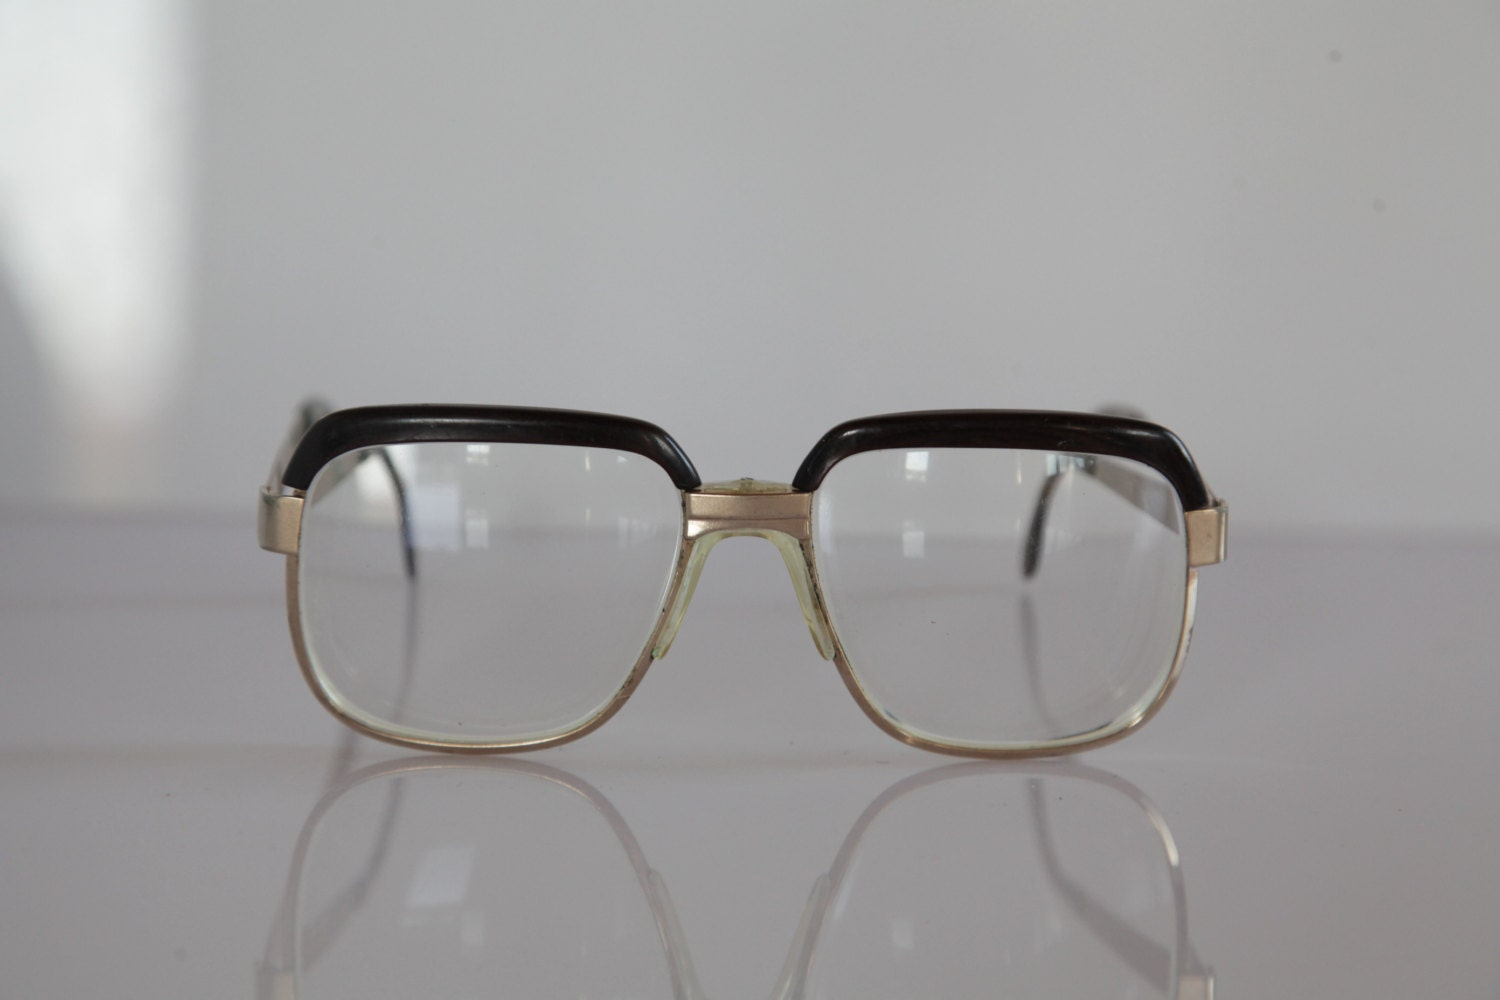 Eyeglasses Frame Made In Germany : Vintage OPTUNA MARATON Eyewear, Gold Frame, Brown, Clear ...